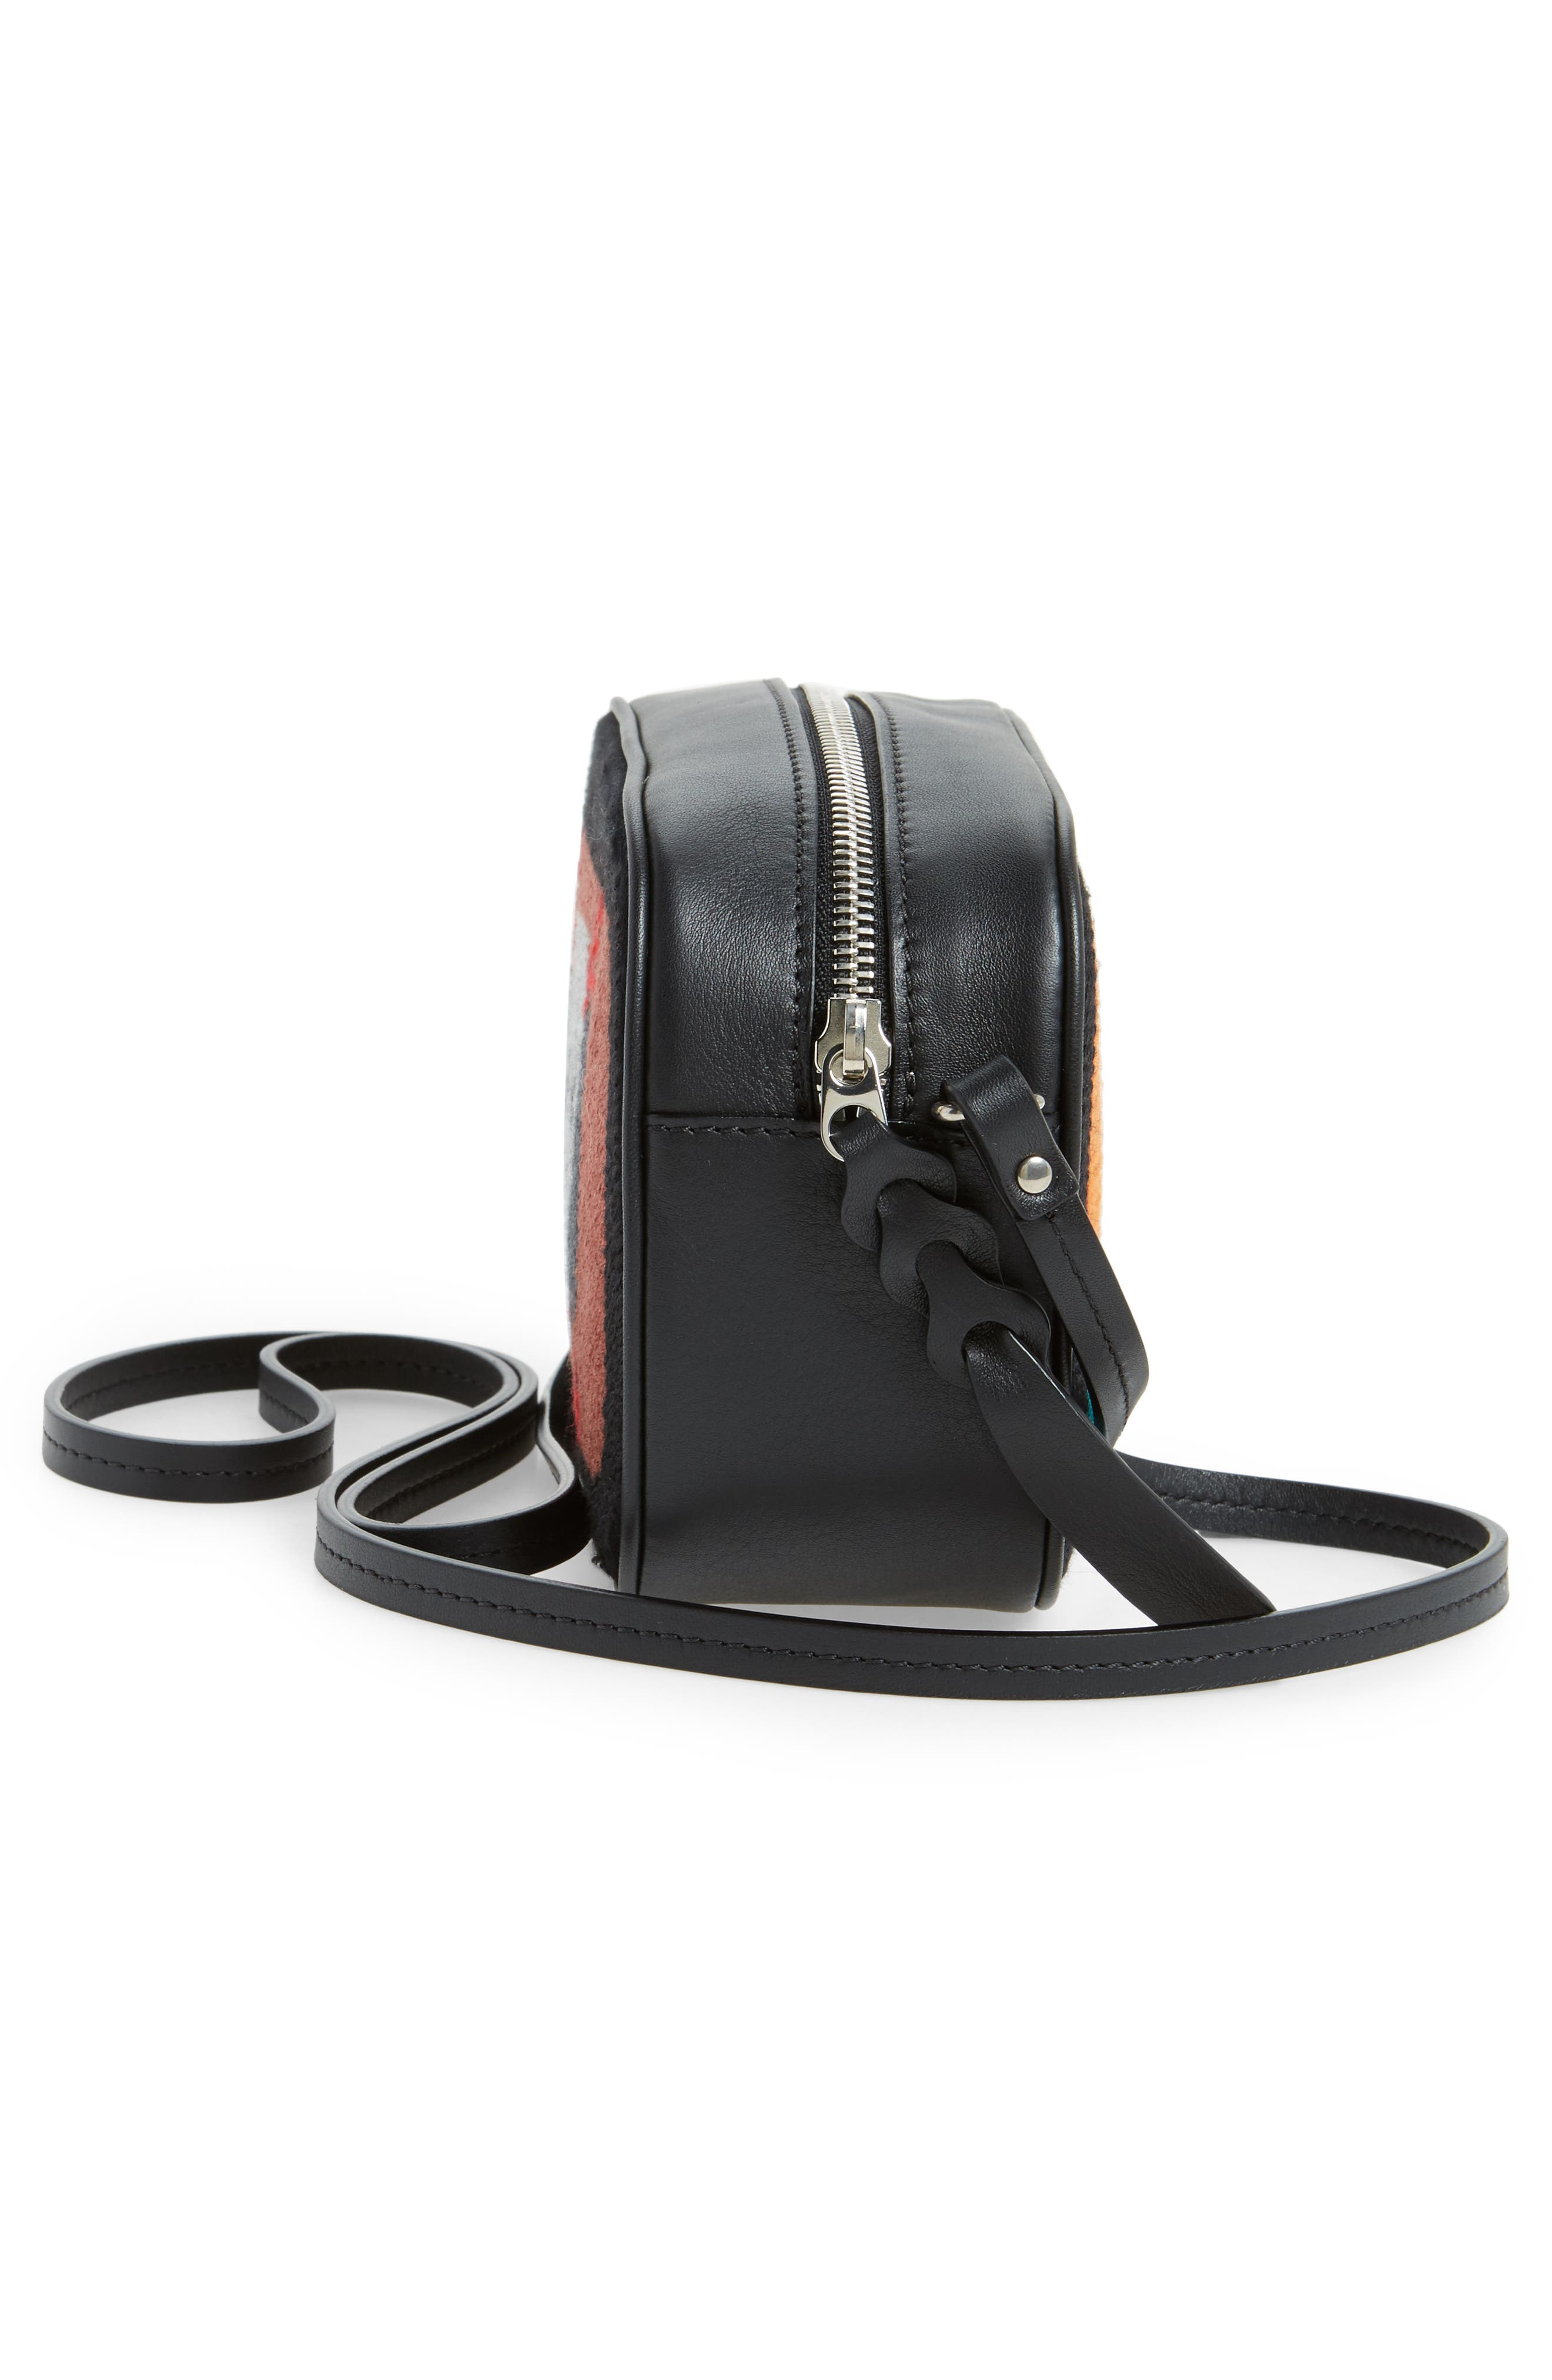 Small Embroidered Leather Camera Bag,                             Alternate thumbnail 5, color,                             Black Multicolor